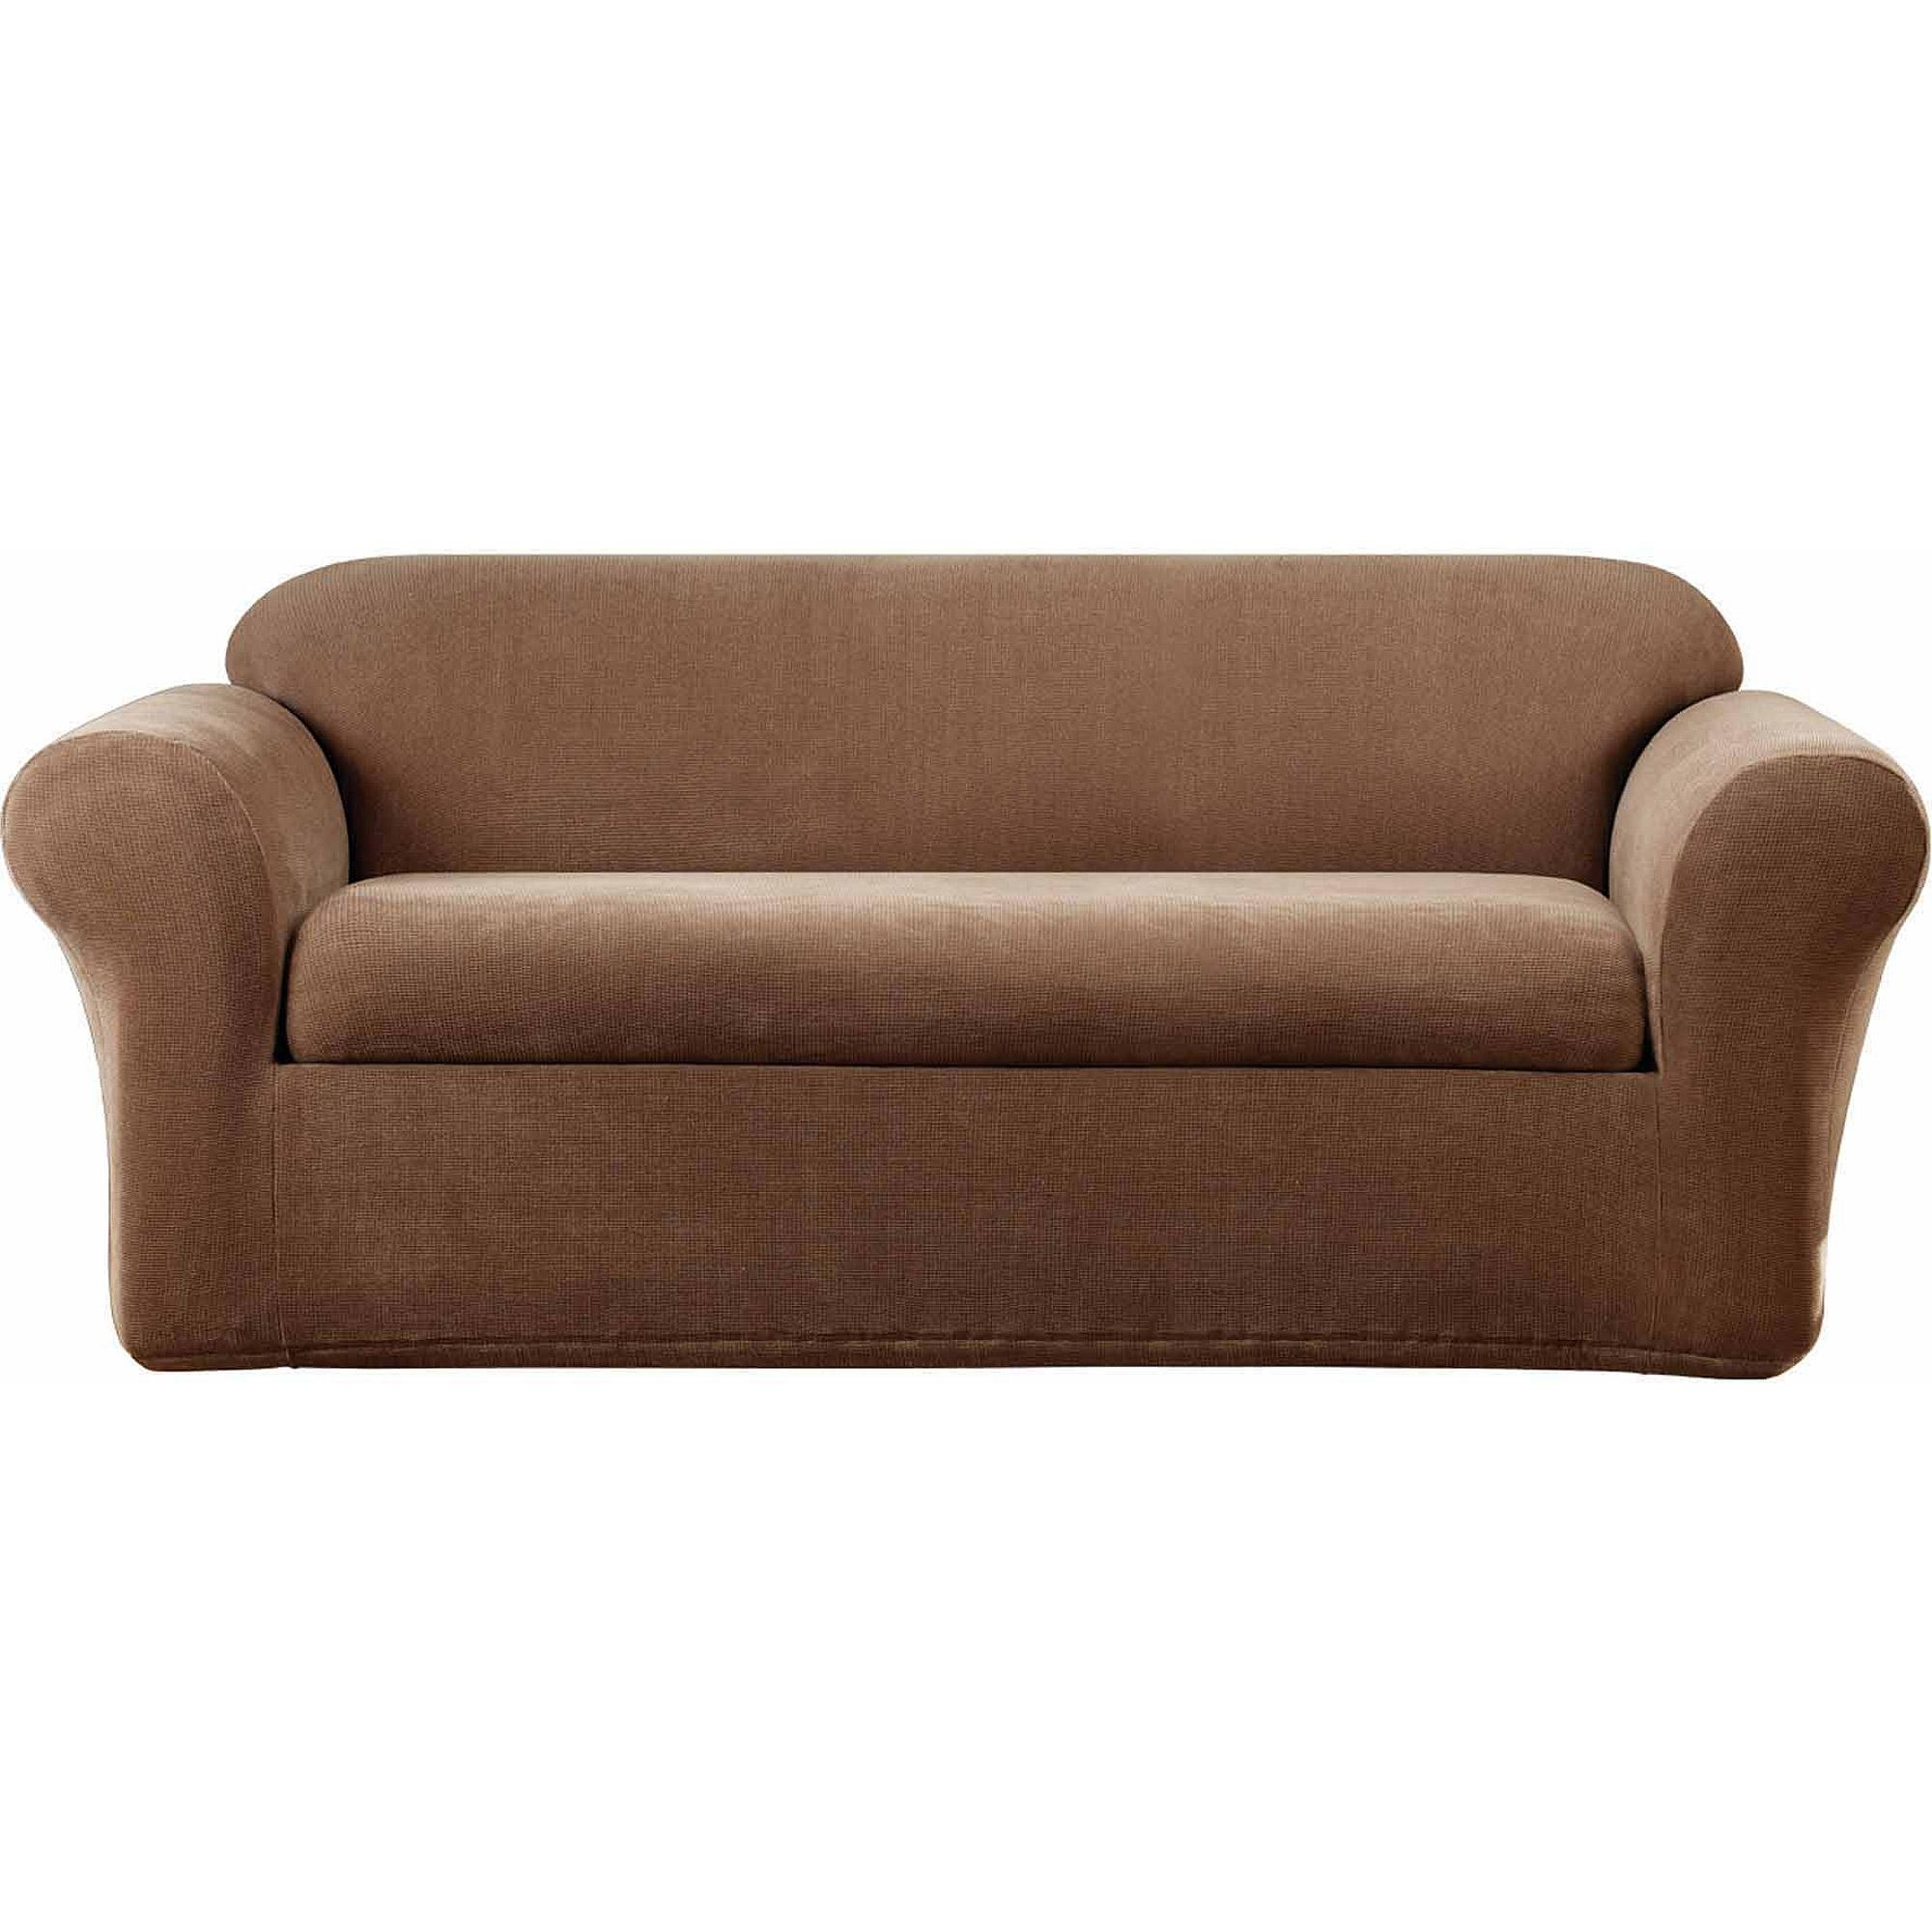 Sure Fit Soft Suede Sofa Cover – Walmart With Regard To Suede Slipcovers For Sofas (Image 20 of 20)